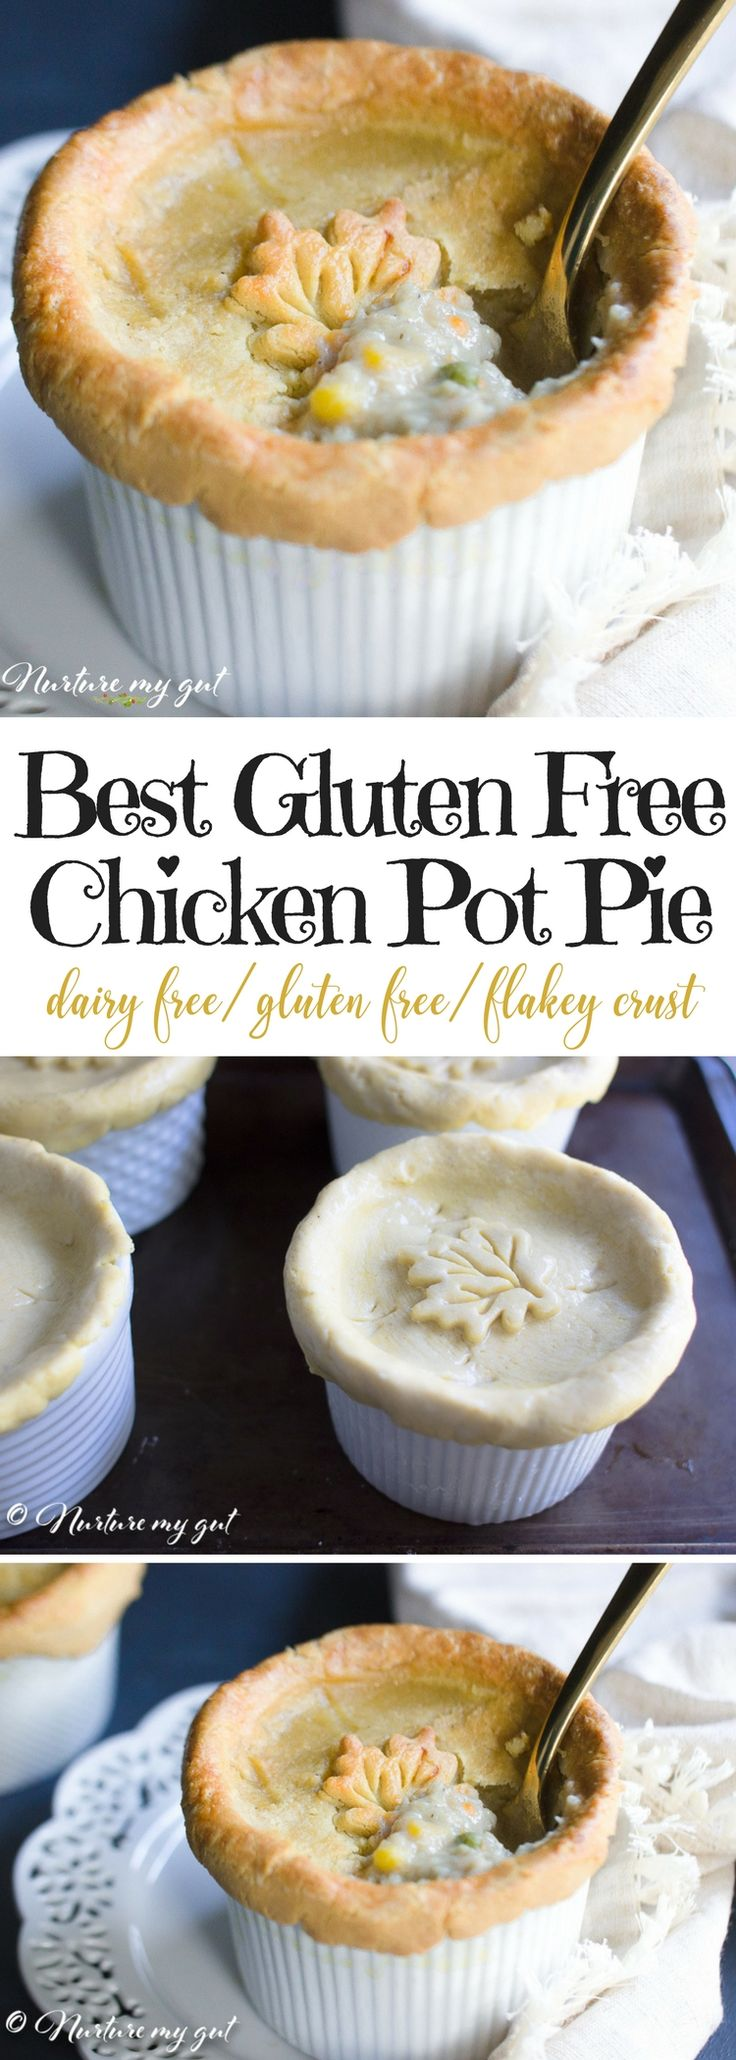 Best Gluten Free Chicken Pot Pie Recipe. This homemade gluten free chicken pot pie is the ultimate comfort food! Recipe has modifications for ramekins or 9''pot pies. Gluten free & dairy free. Made with a homemade flakey gluten free crust.